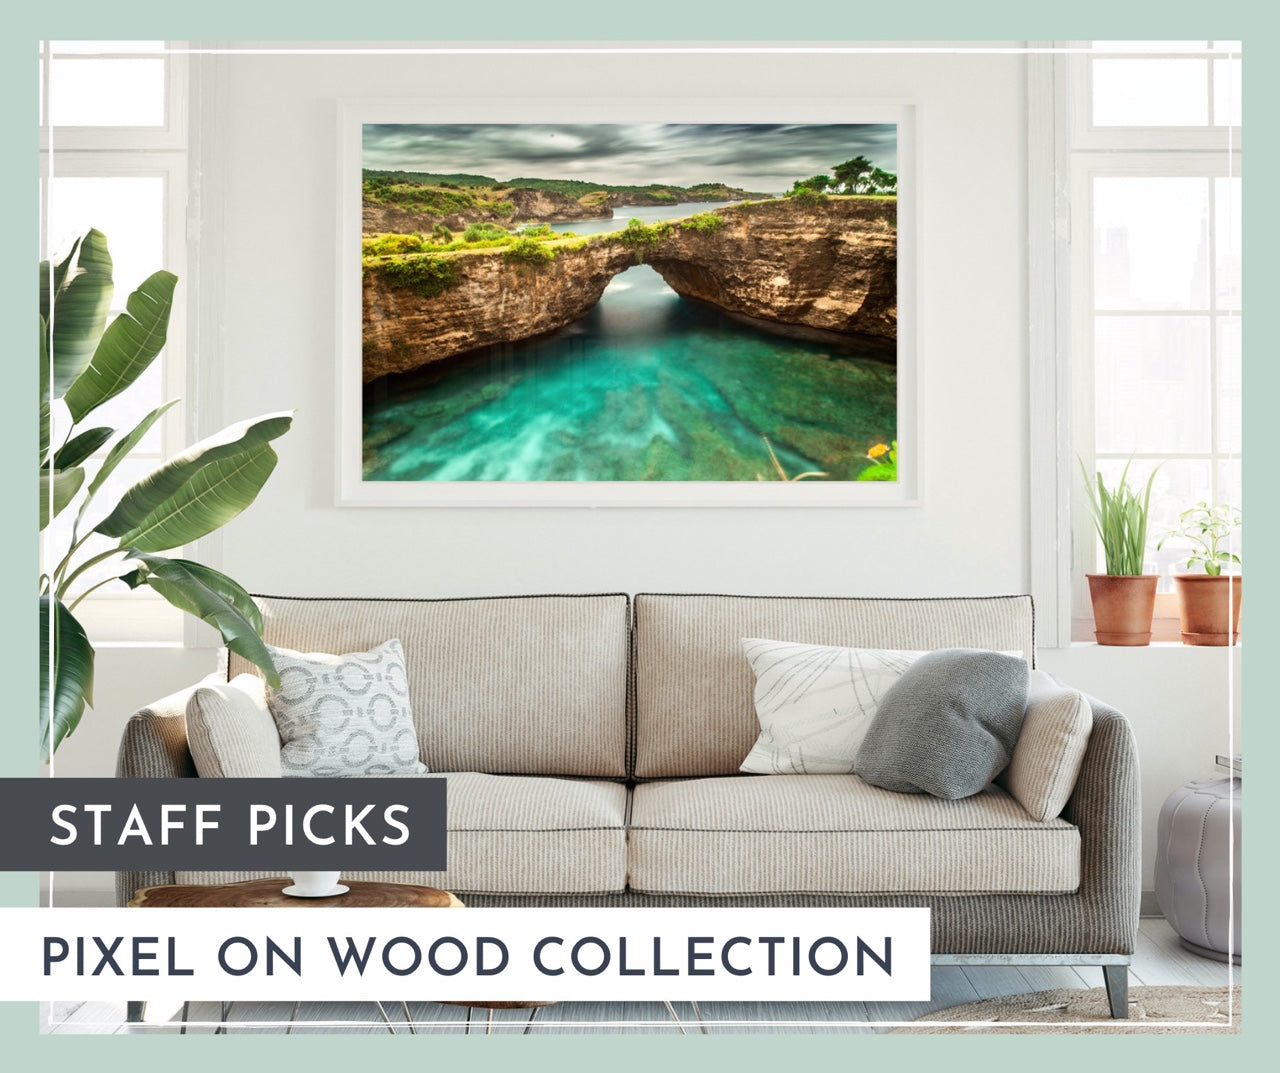 Staff Picks: Pixel On Wood